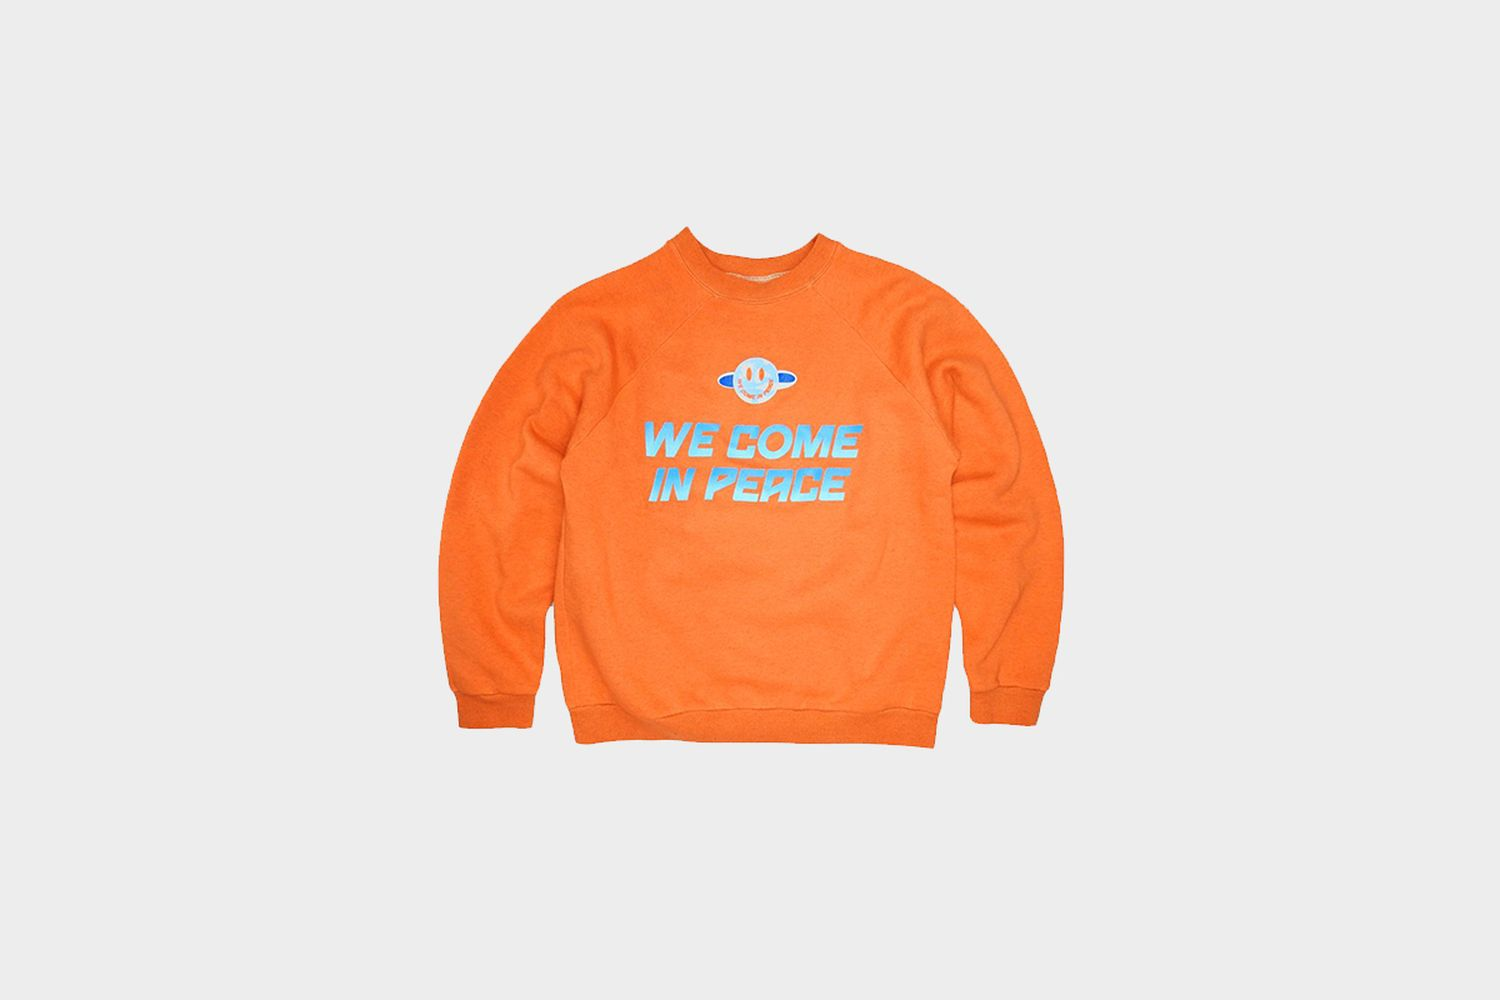 """WE COME IN PEACE"" Crewneck"